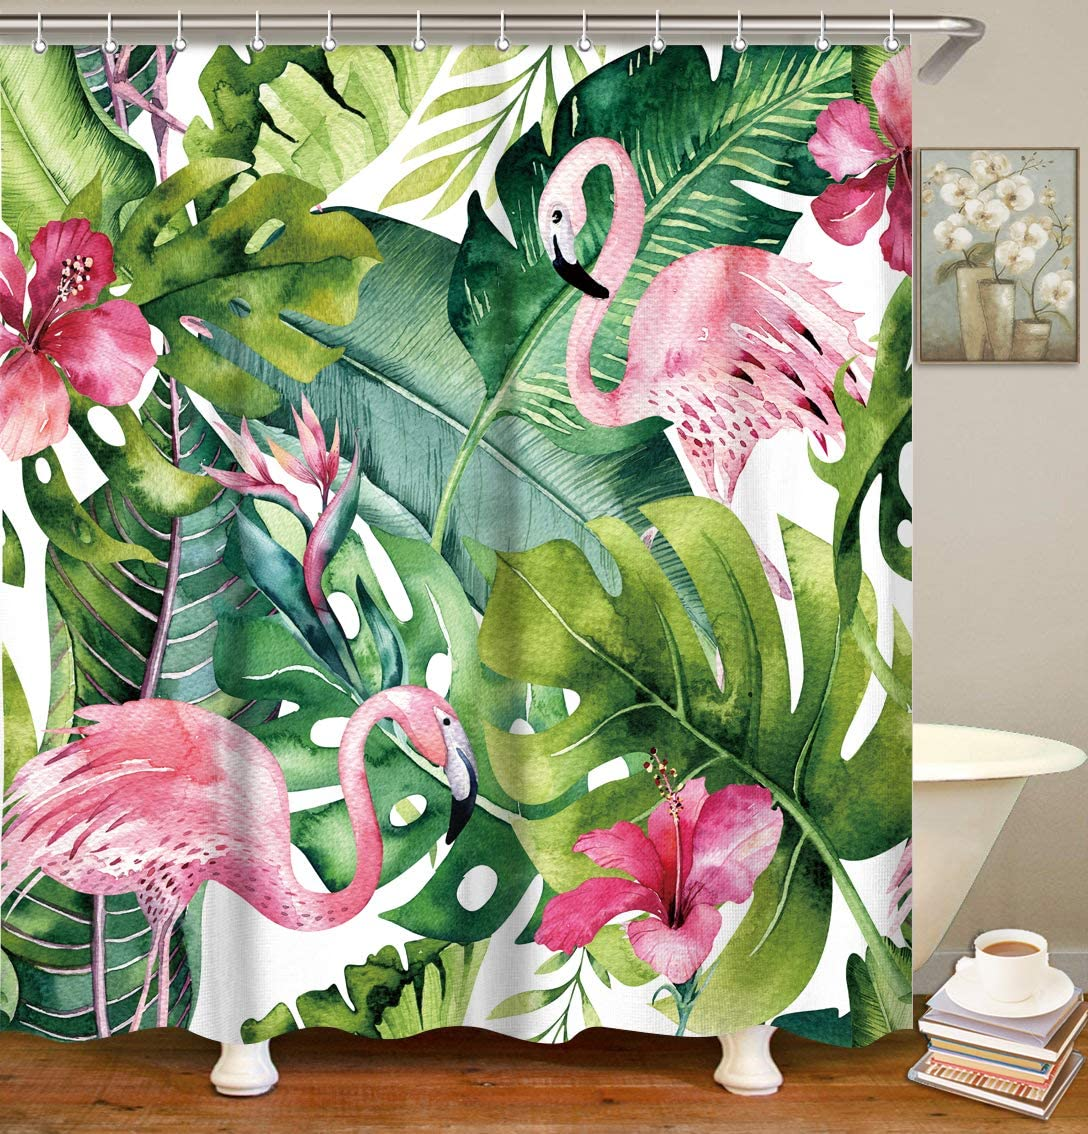 Amazon Com Livilan Tropical Leaf Shower Curtain Flamingo Fabric Bathroom Curtains Set With Hooks Green Banana Palm Leaves Bathroom Decor 72x72 Inches Machine Washable Opaque Modern Home Kitchen Buy tropical shower curtains and get the best deals at the lowest prices on ebay! livilan tropical leaf shower curtain flamingo fabric bathroom curtains set with hooks green banana palm leaves bathroom decor 72x72 inches machine